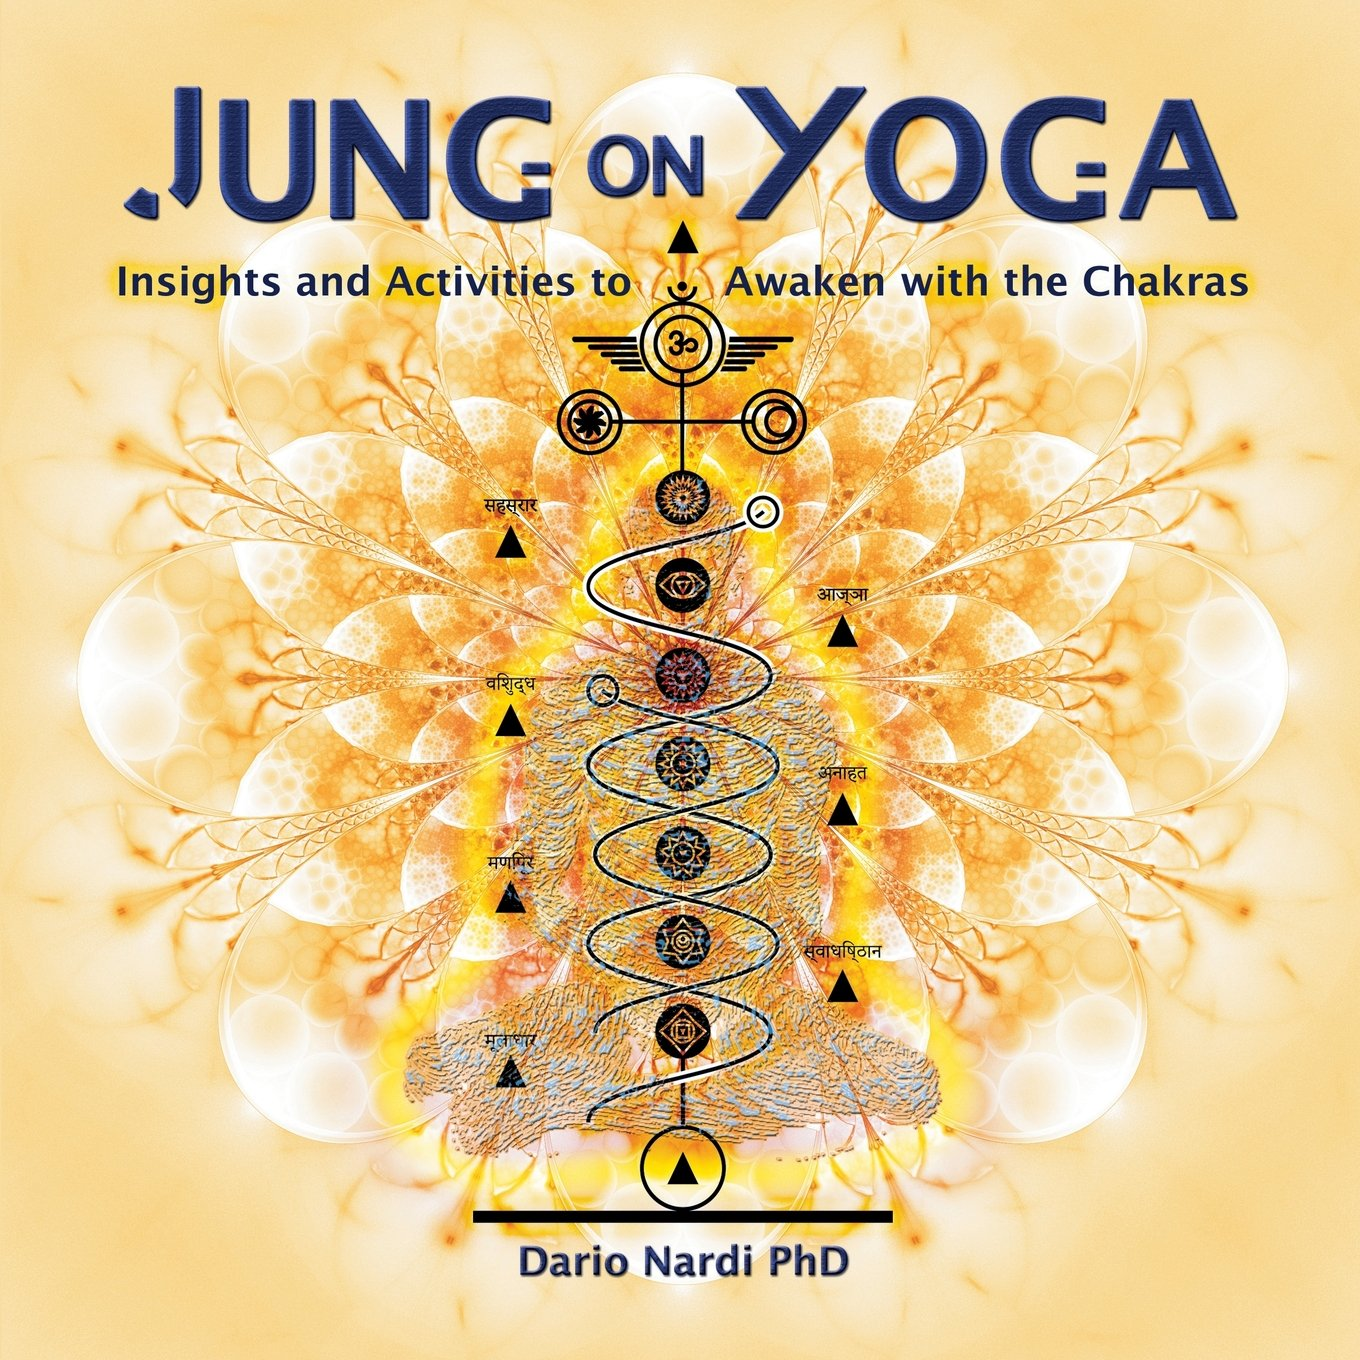 Jung on Yoga: Insights and Activities to Awaken with the Chakras